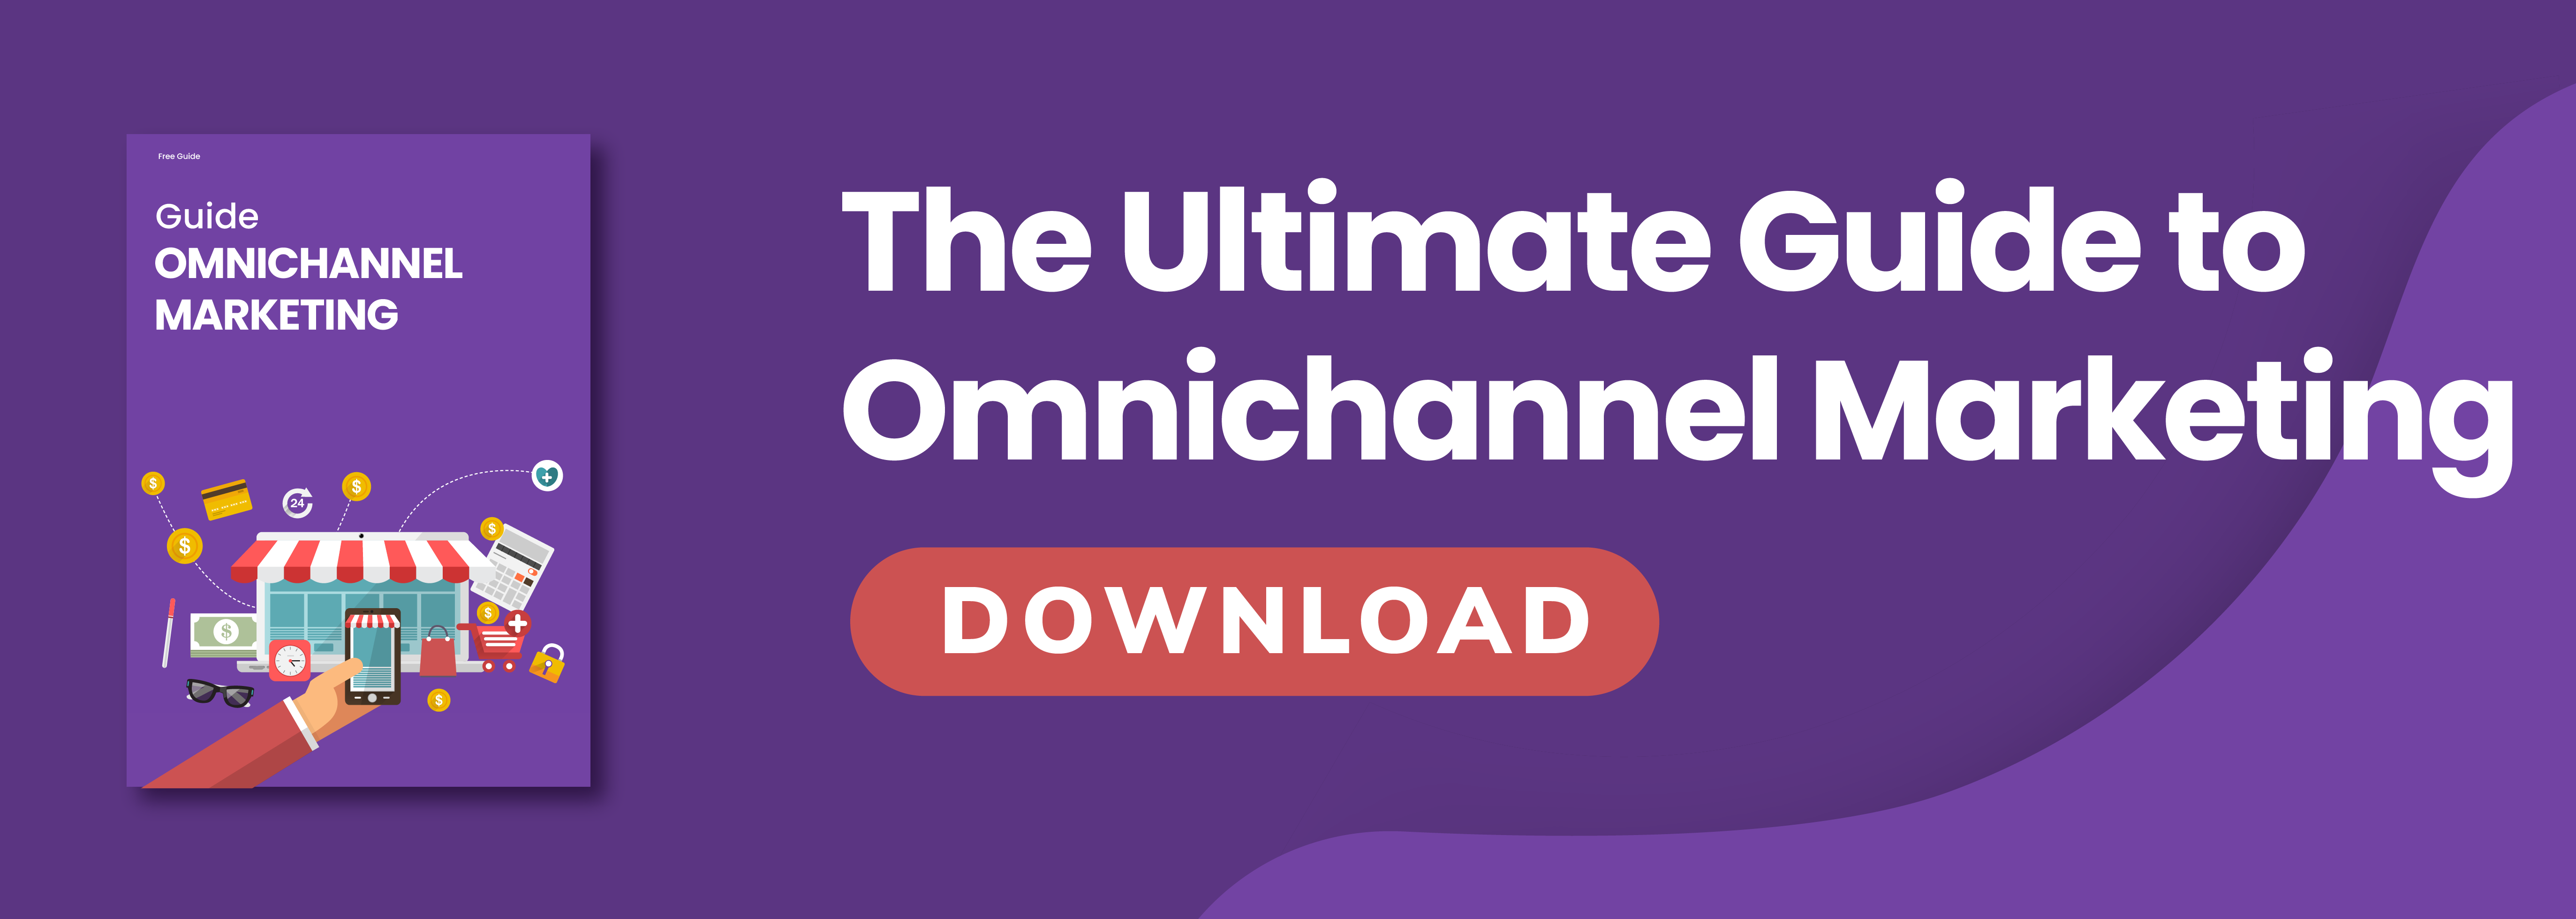 The ultimate guide to omnichannel marketing - download now